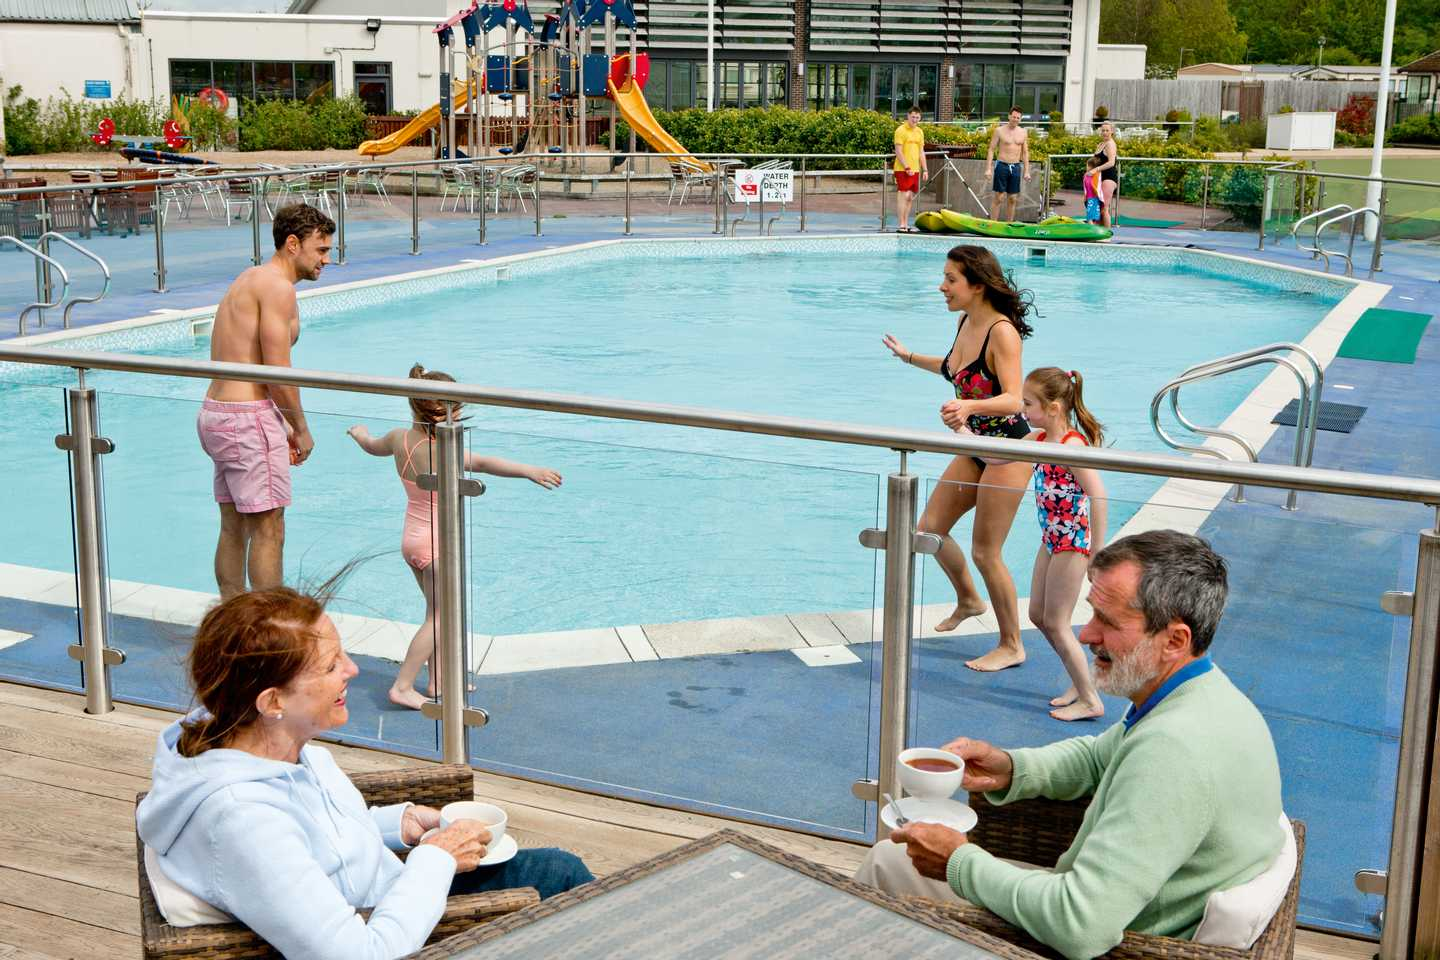 Guests getting ready for a dip in the outdoor pool at Lakeland